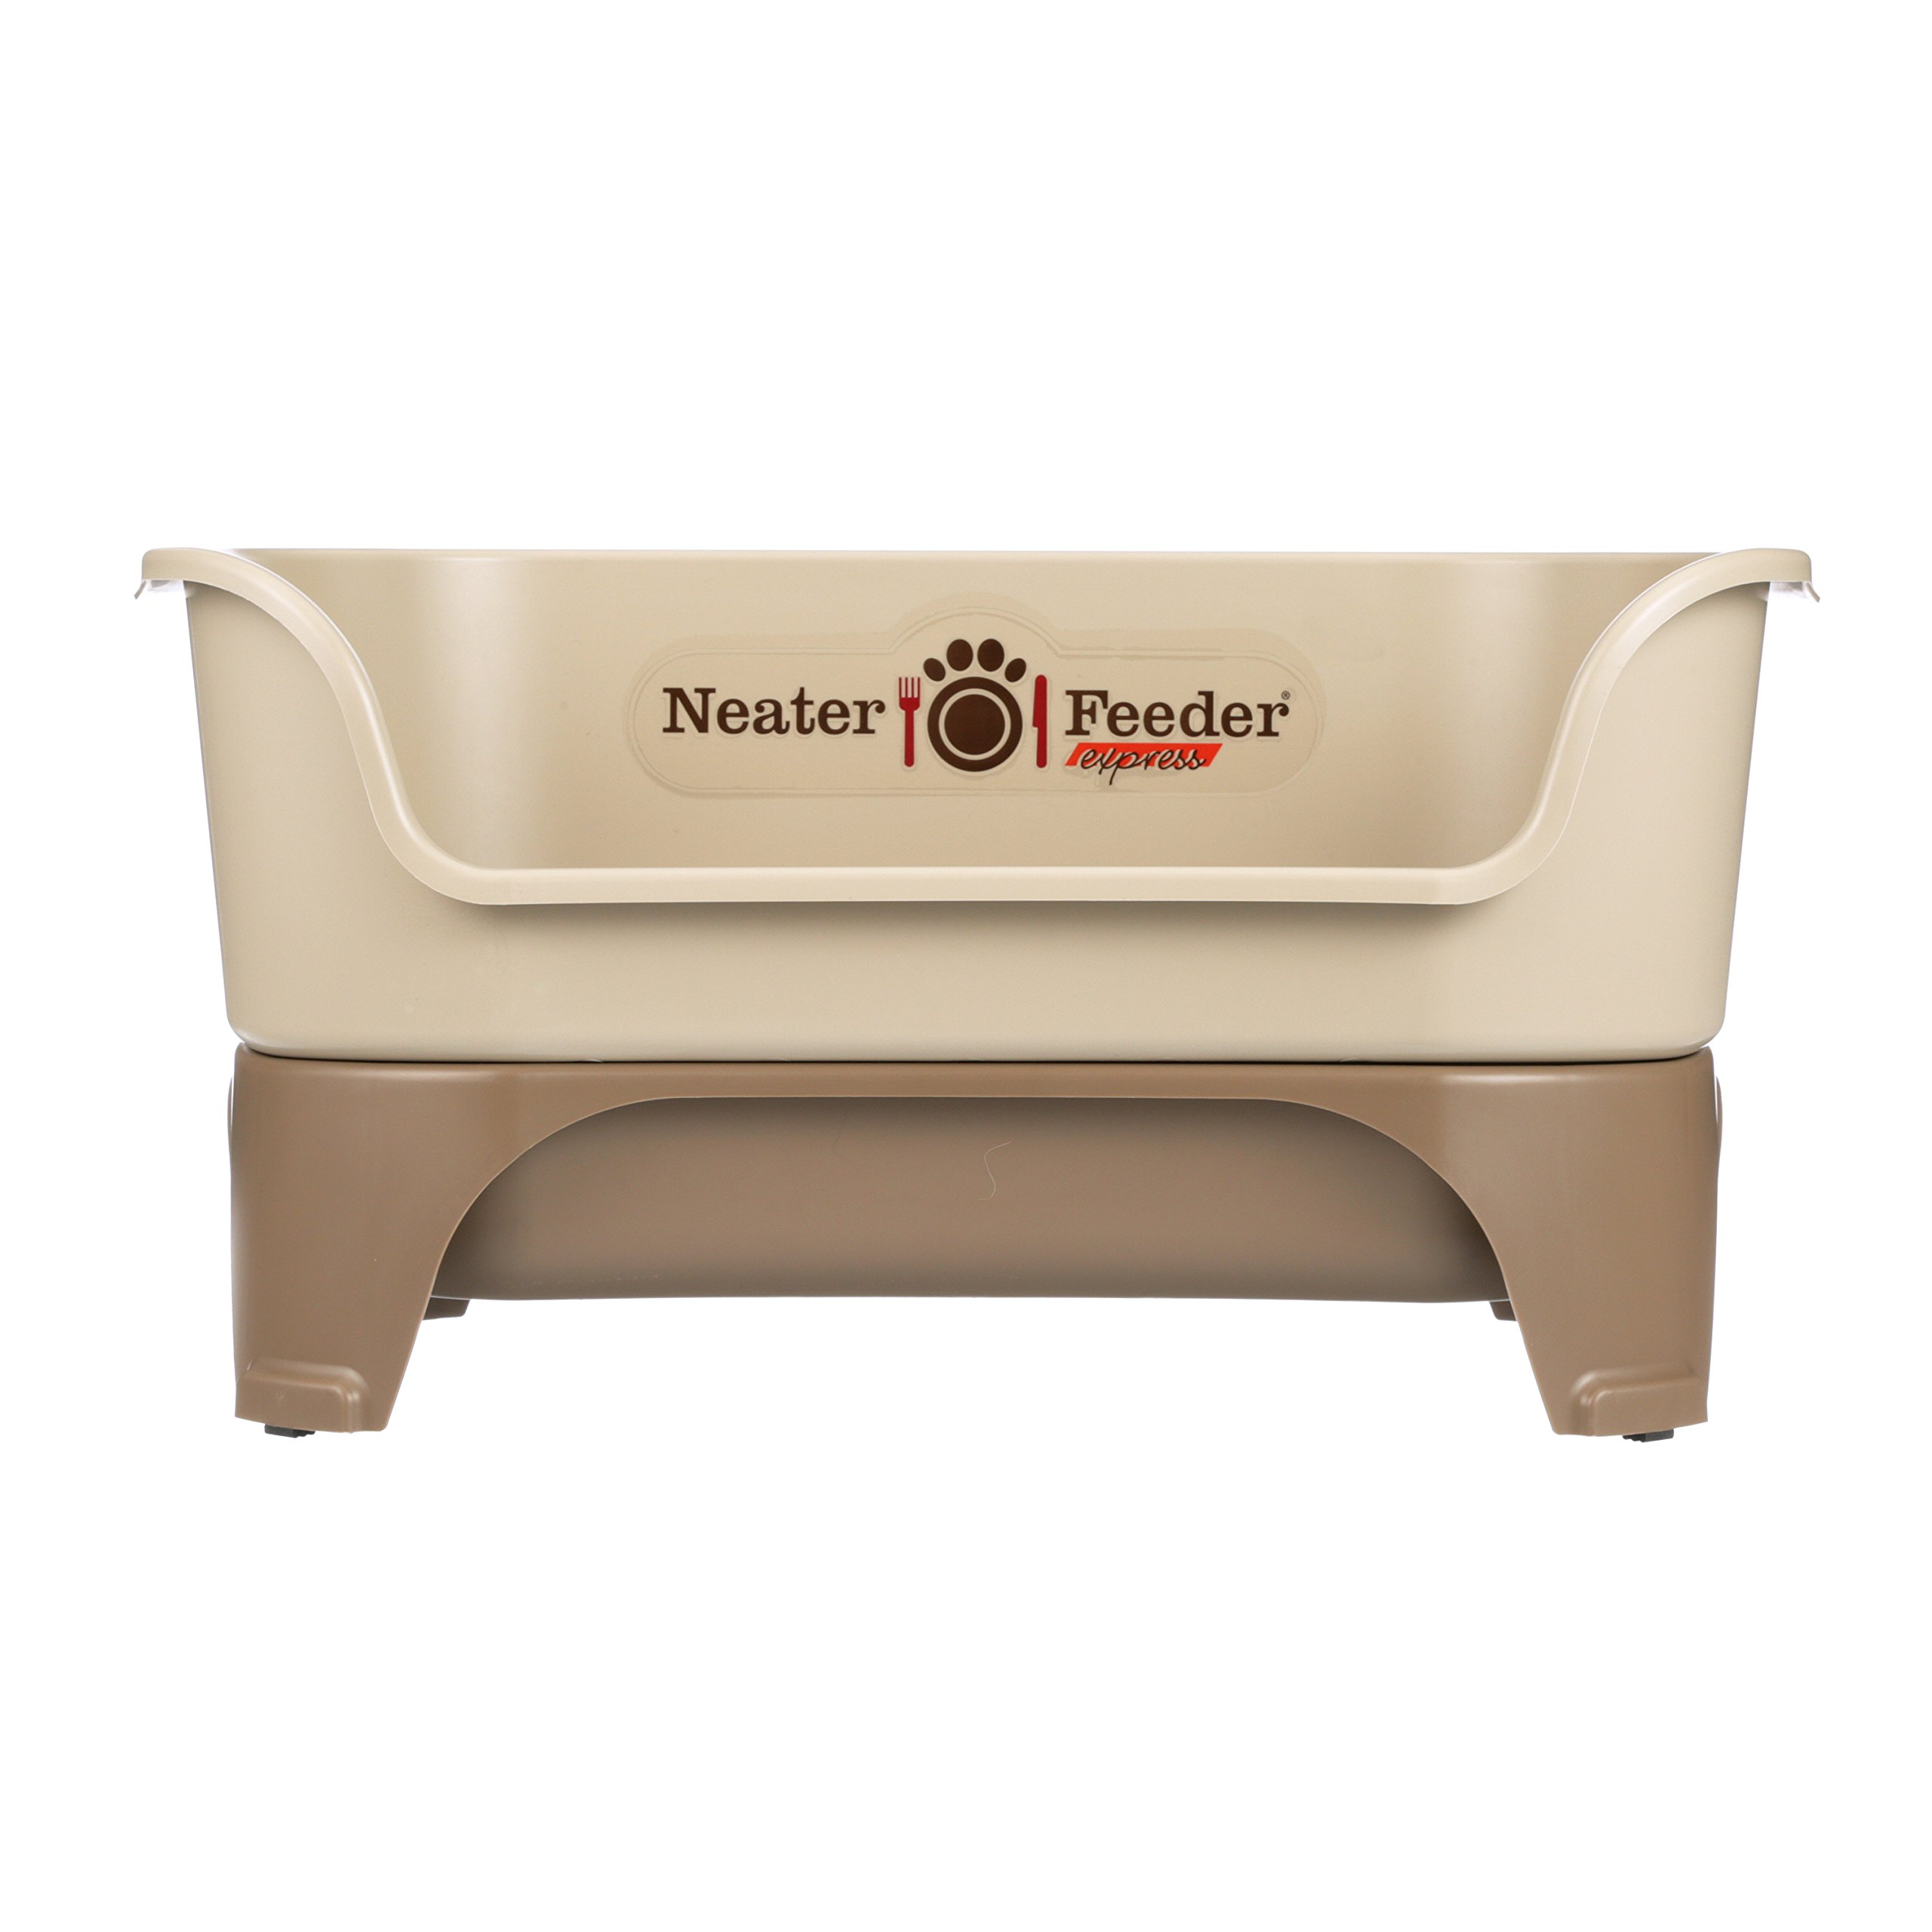 Neater Feeder Express (Medium to Large Dog, Champagne) & Slow Feed Bowl Combination Package by Neater Feeder (Image #3)